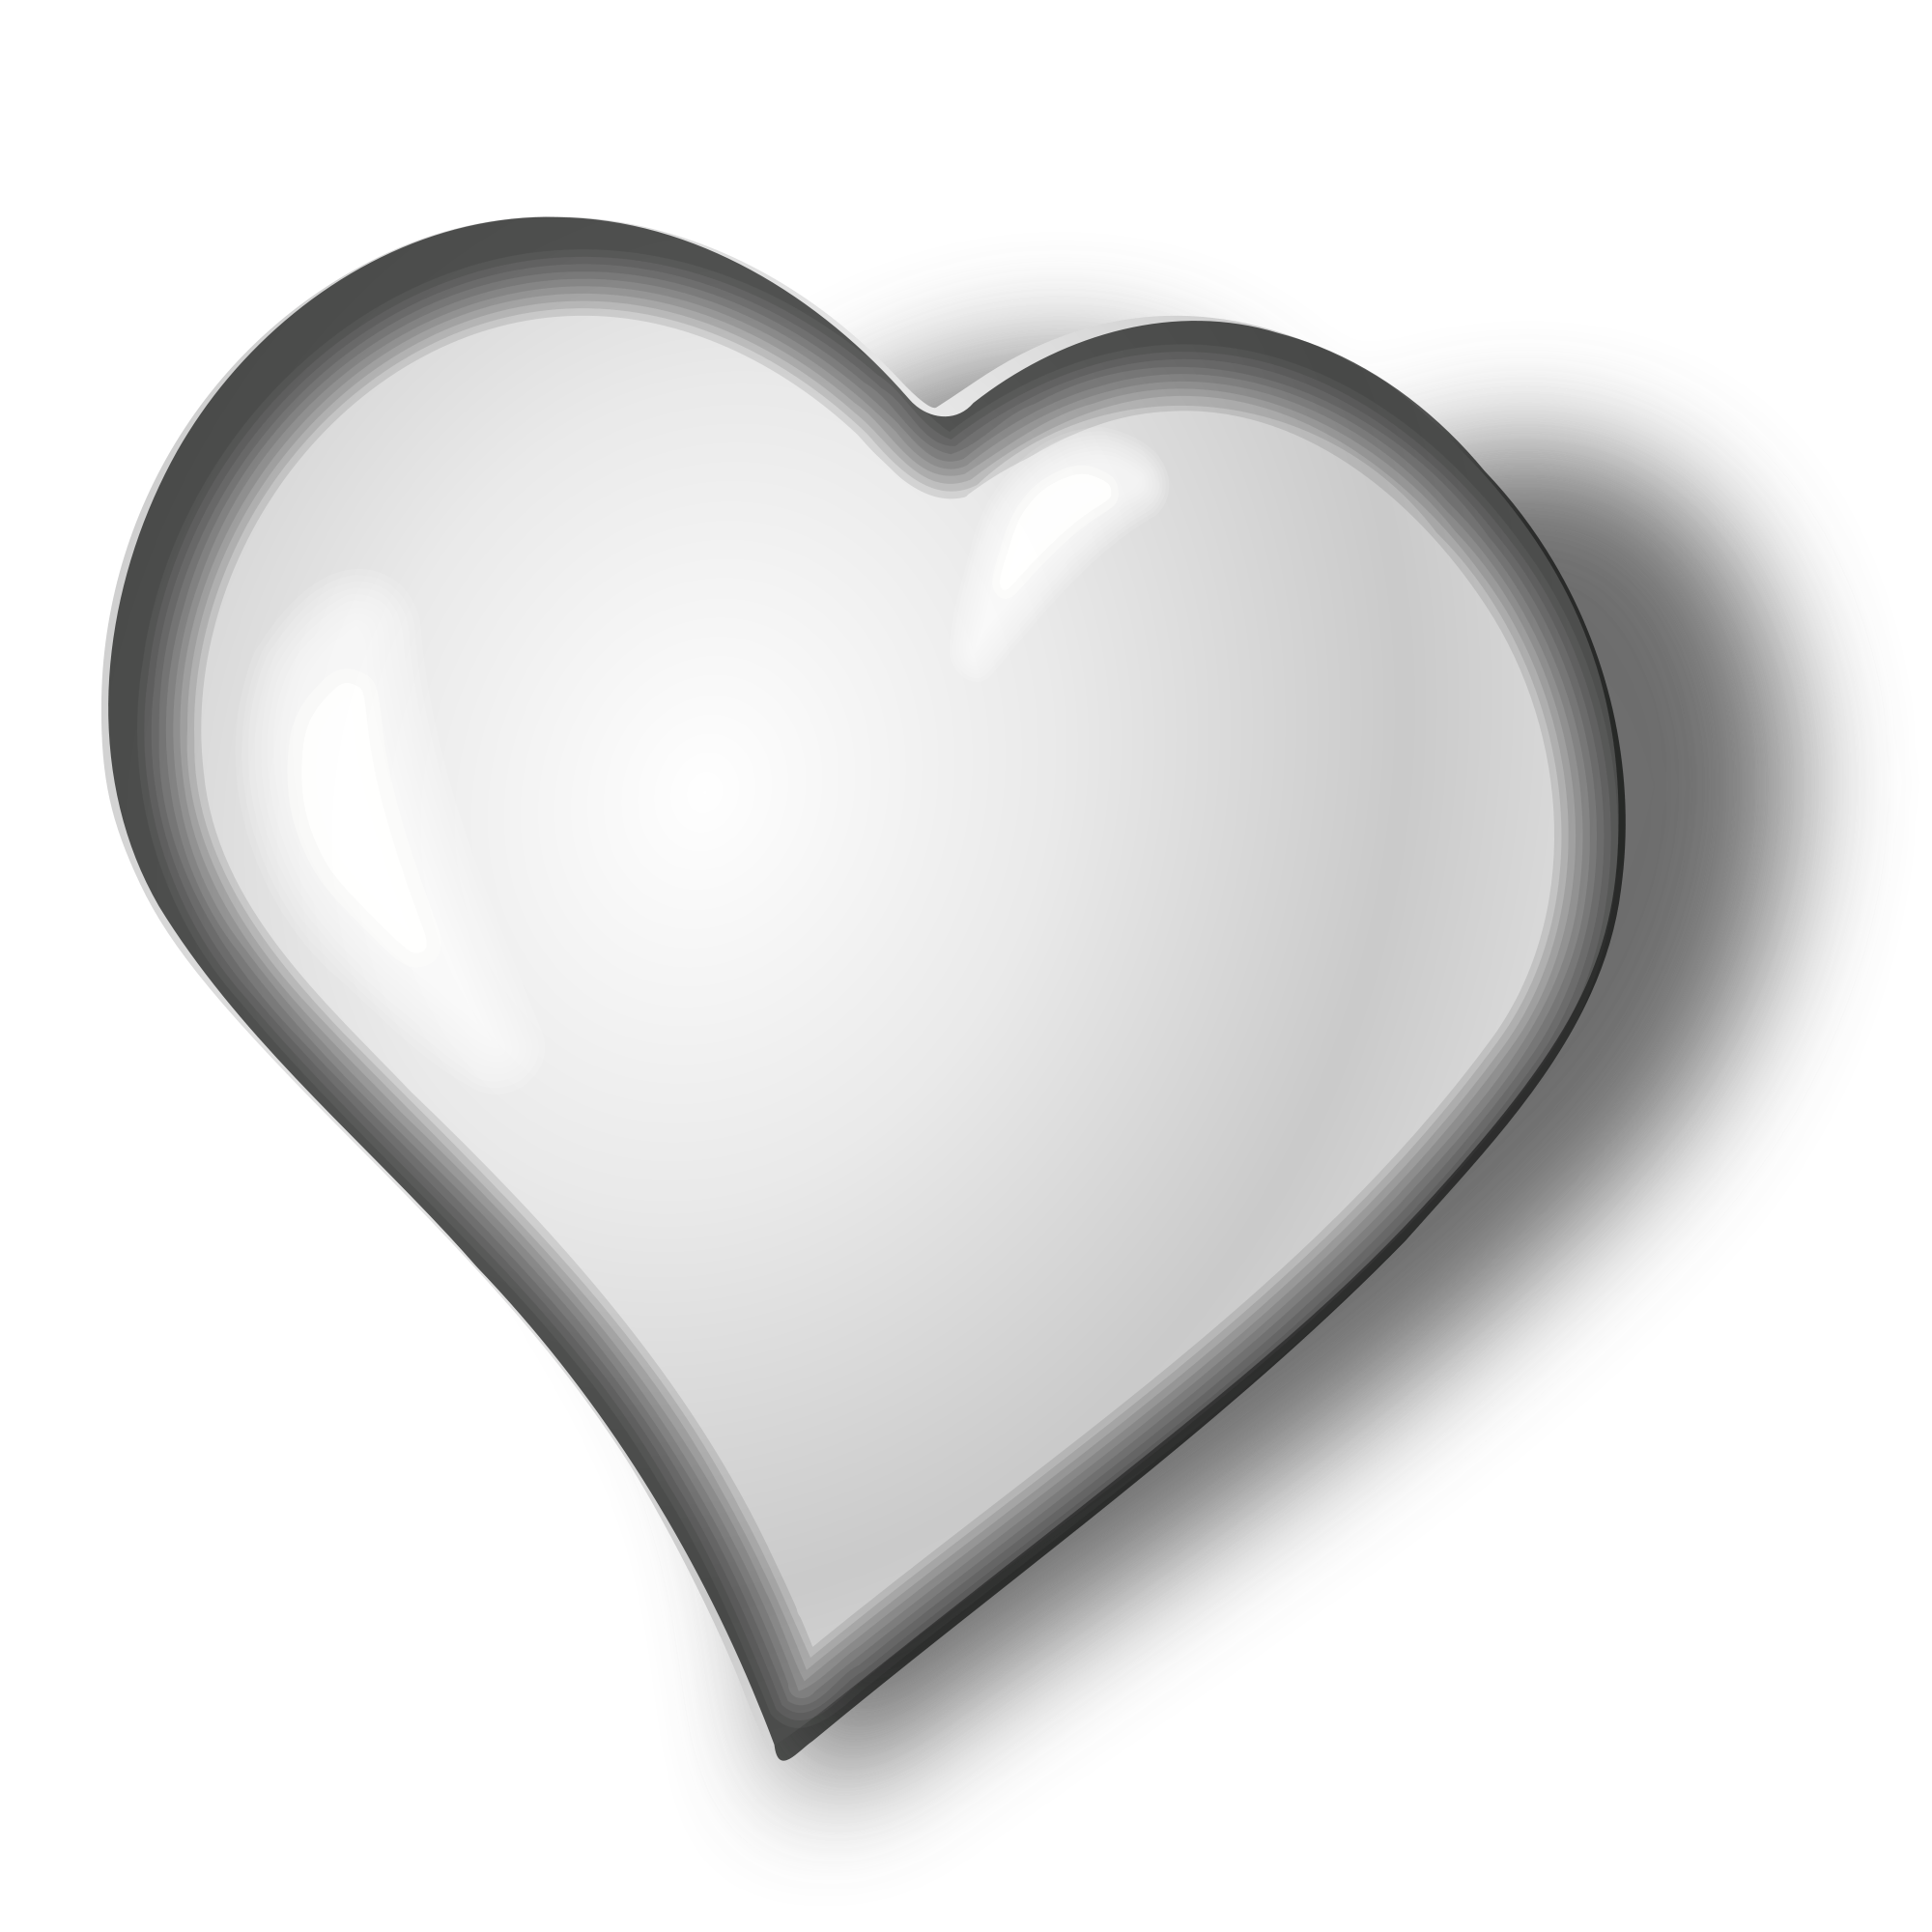 Heart png white. File svg wikimedia commons